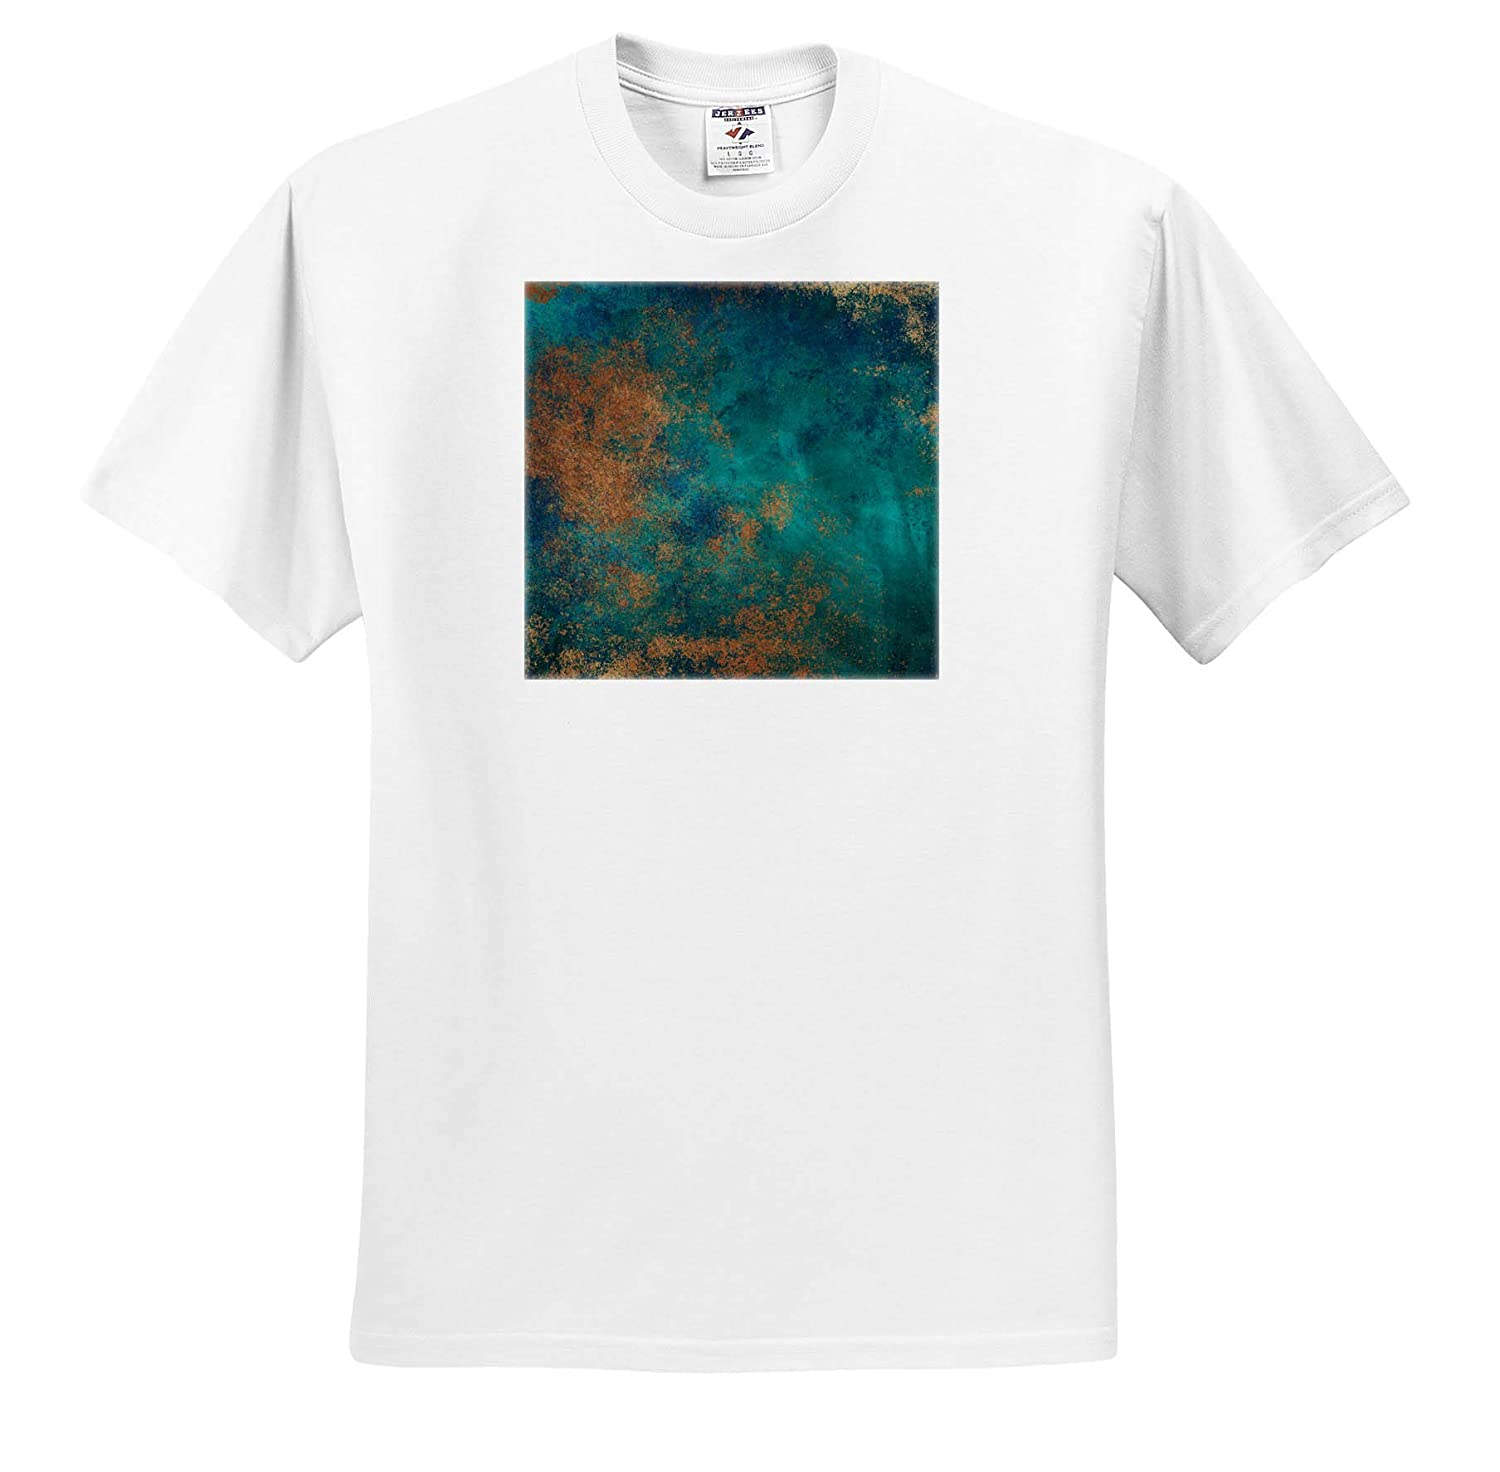 ts/_316248 Adult T-Shirt XL Abstract 3dRose Anne Marie Baugh Teal and Image of Copper Abstract